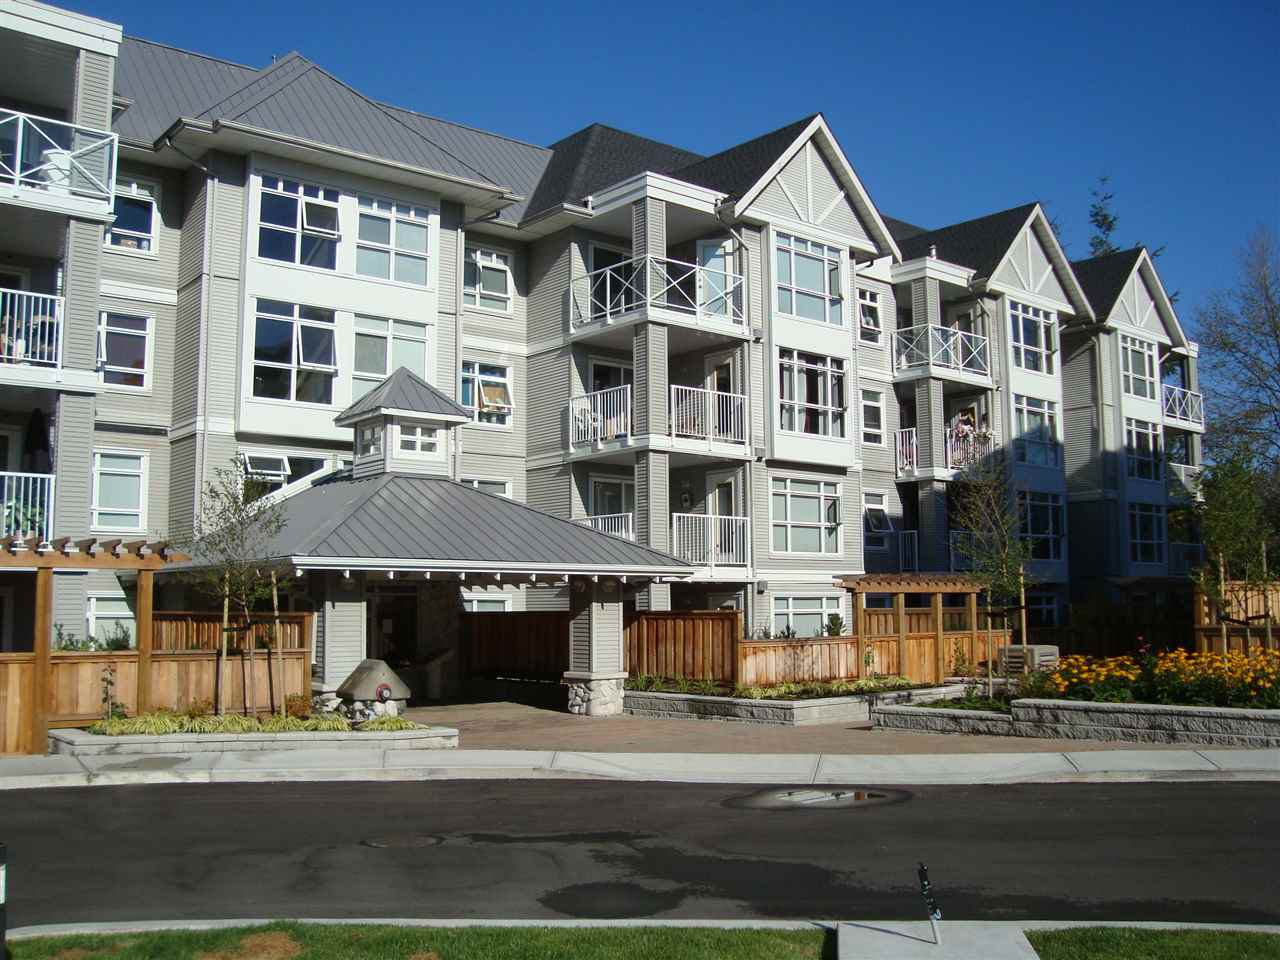 """Main Photo: 412 3136 ST JOHNS Street in Port Moody: Port Moody Centre Condo for sale in """"SONRISA"""" : MLS®# R2101760"""